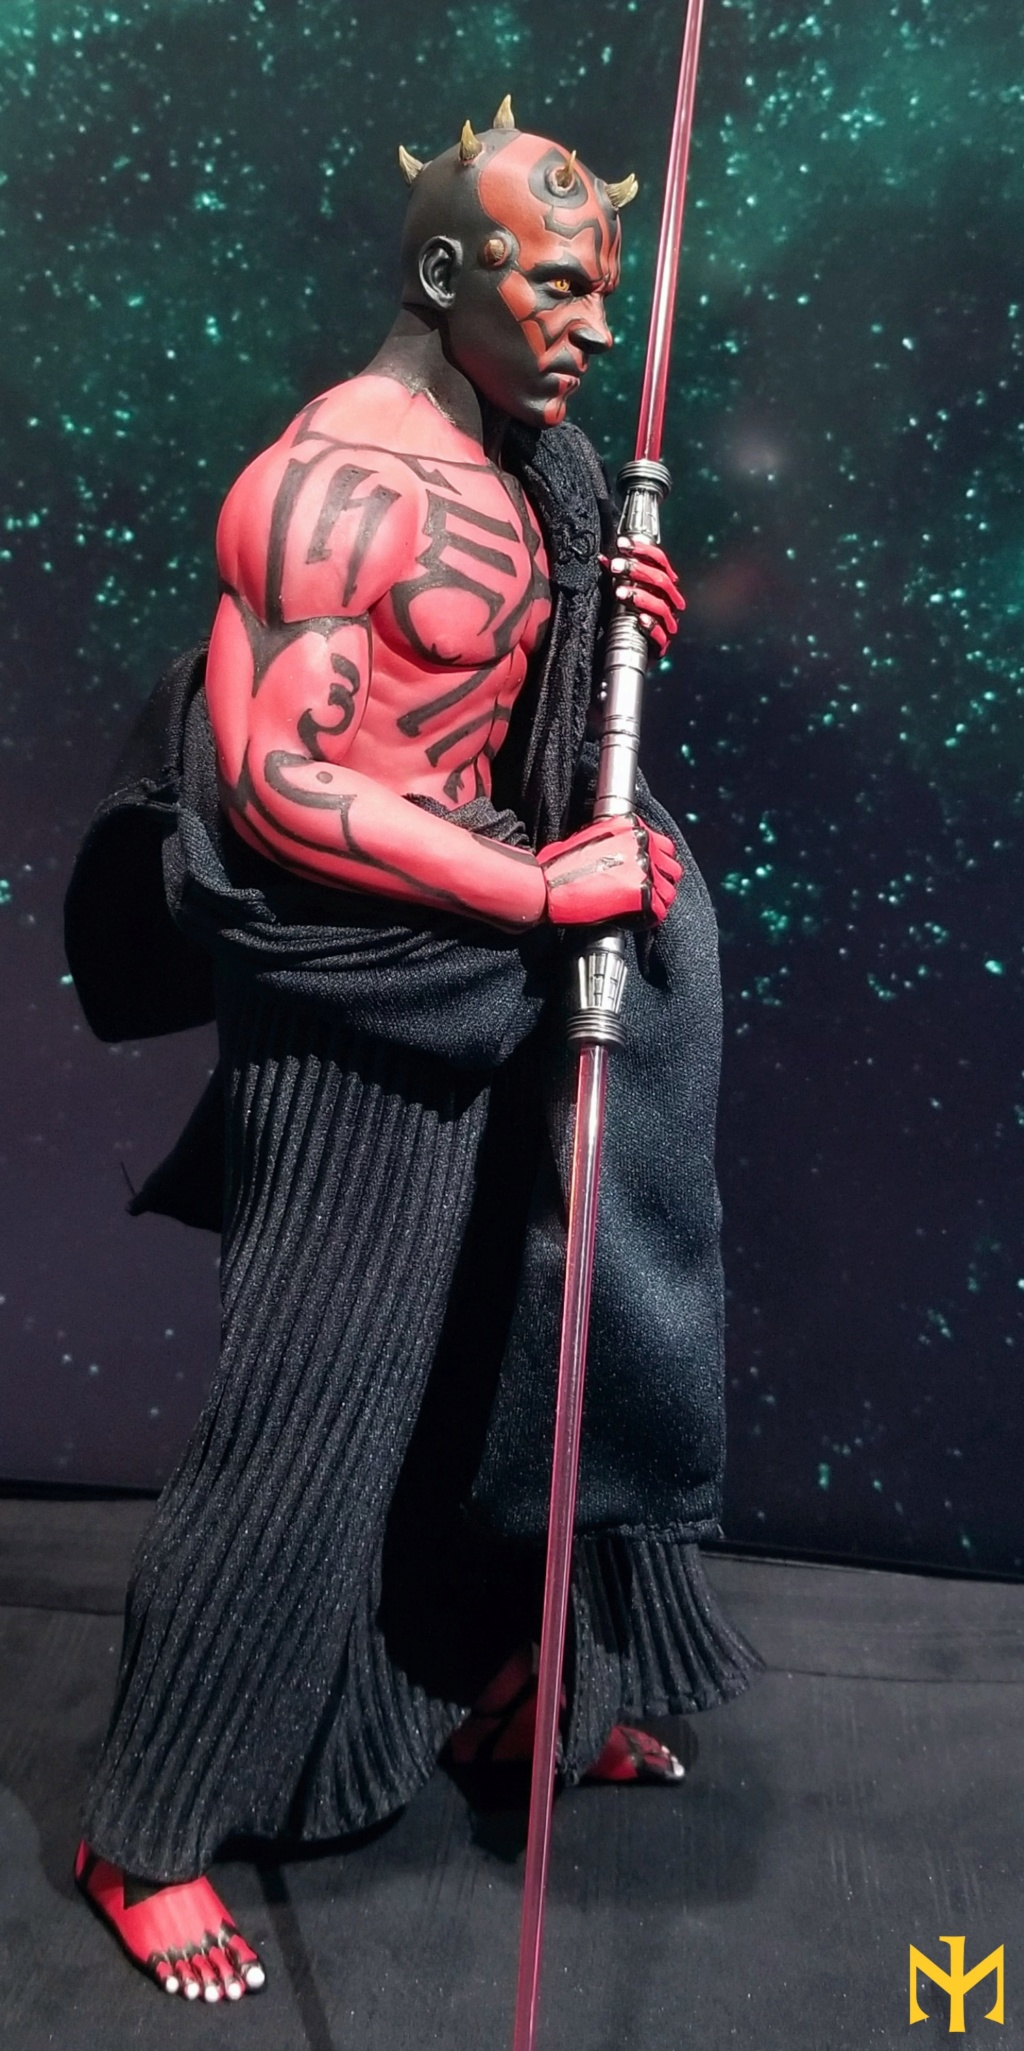 STAR WARS Updated Darth Maul Custom Part IV Maul 2.0 (photo heavy) Swdmt013